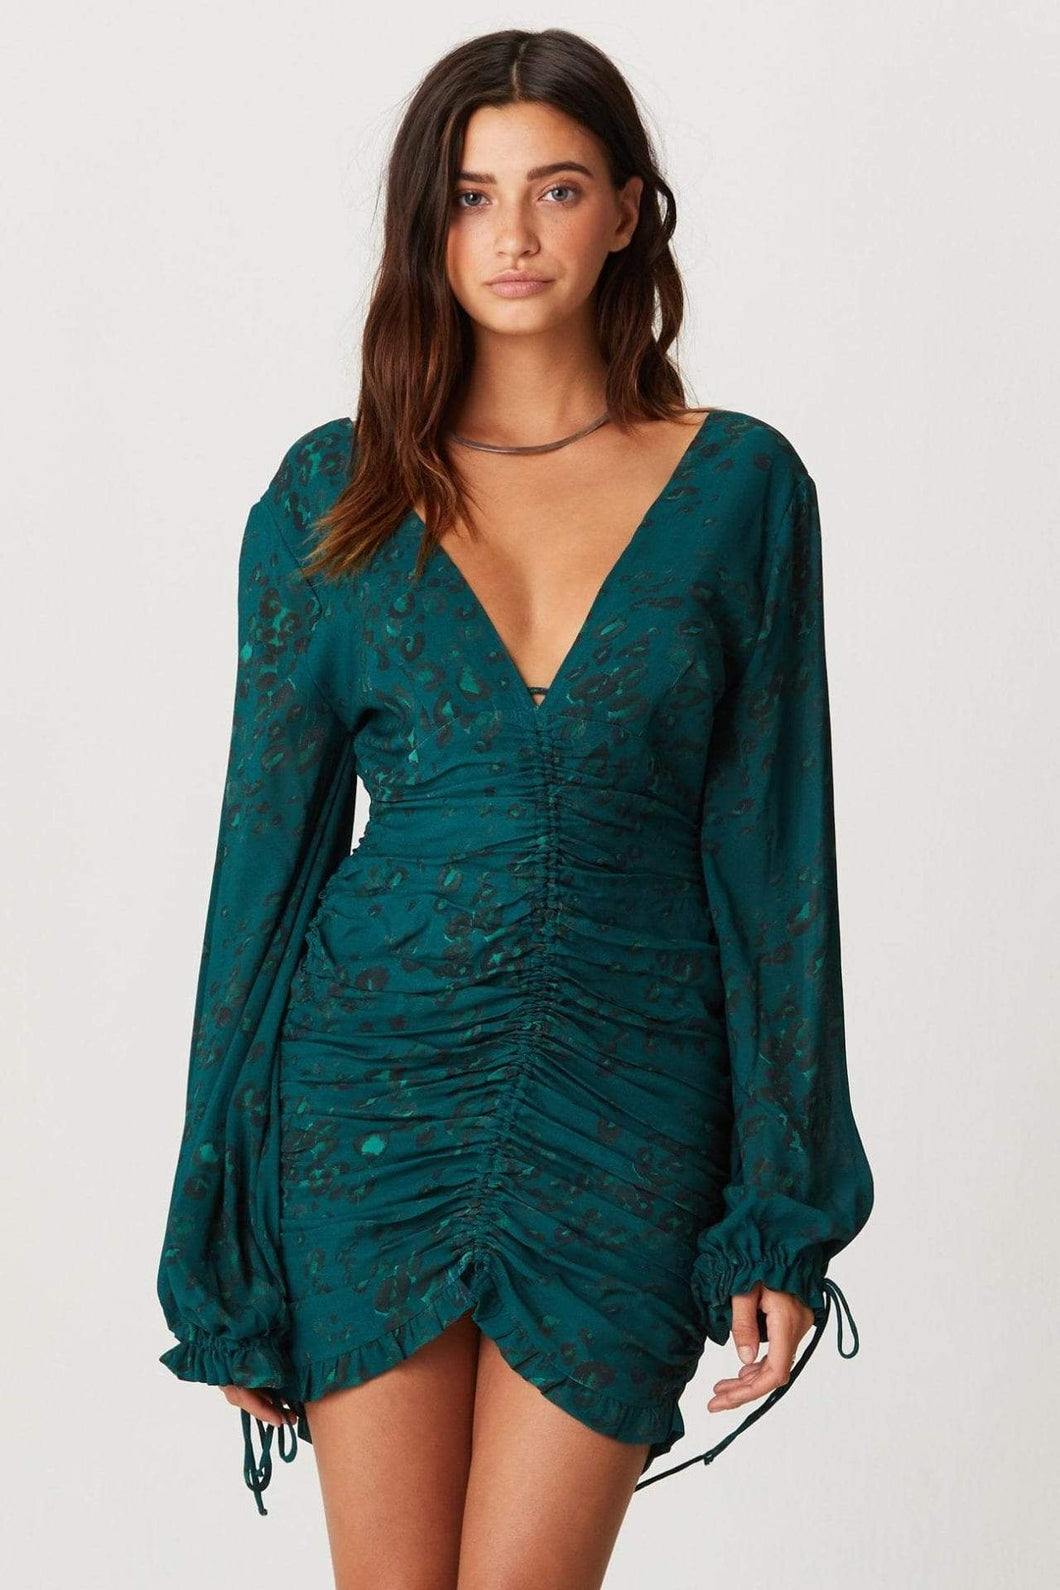 Jen's Pirate Booty Rainforest Mini Dress in Emerald Leopard